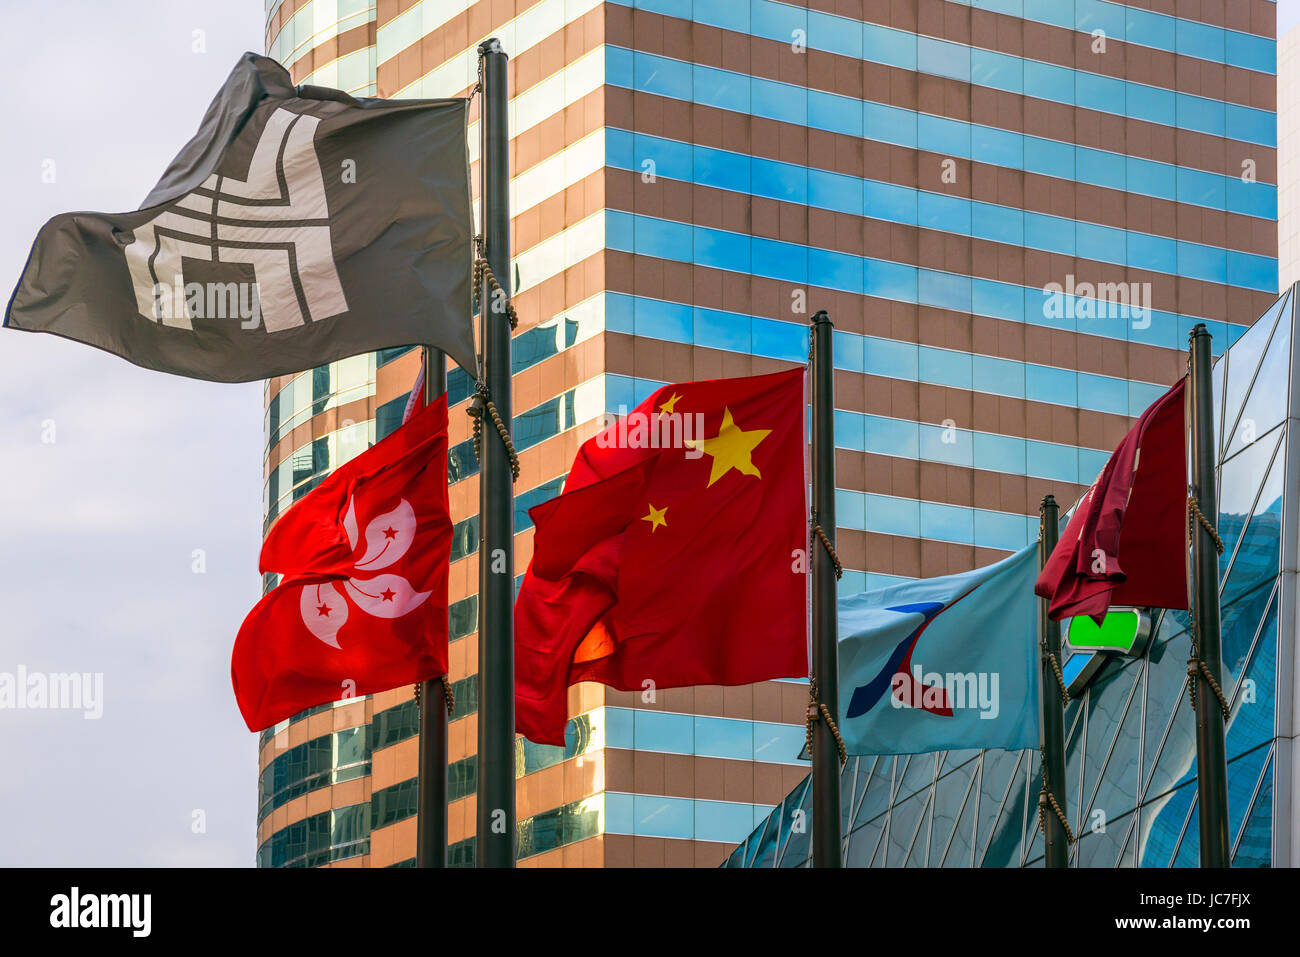 Flags, The Forum, Exchange Square, Hong Kong - Stock Image